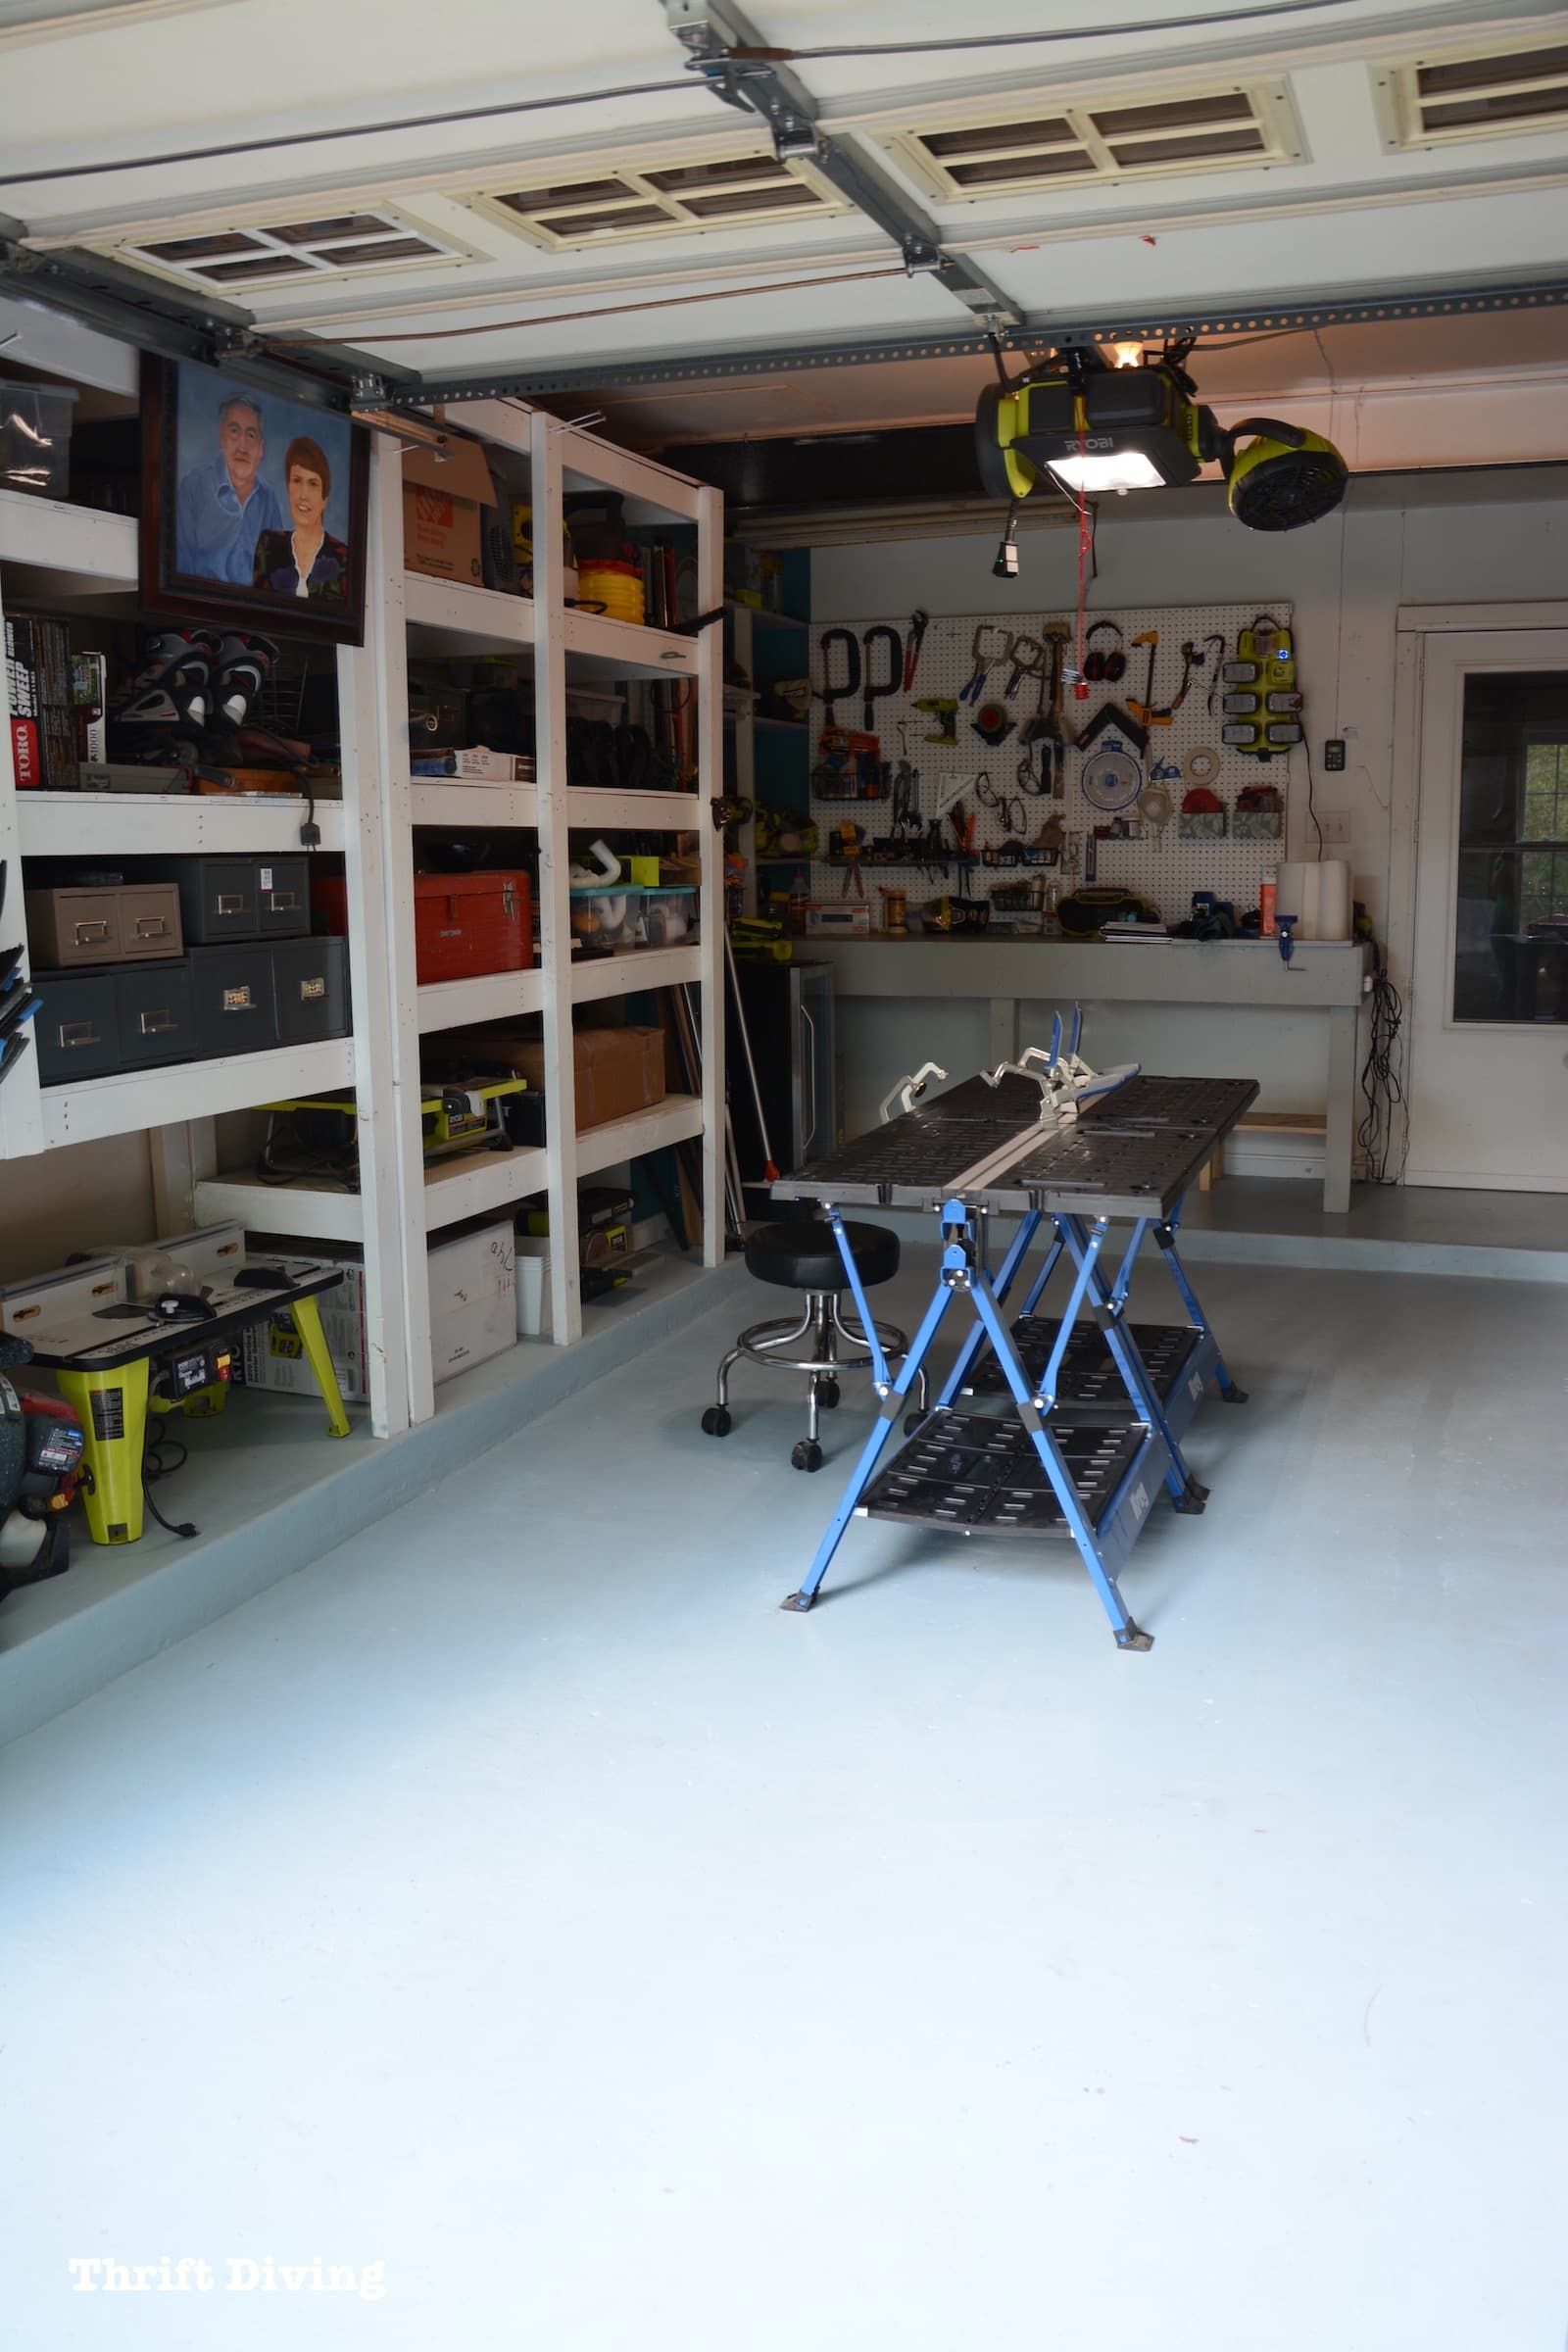 How To Paint Garage Floors With 1 Part Epoxy Paint In 2020 Garage Floor Paint Garage Floor Floor Paint Colors